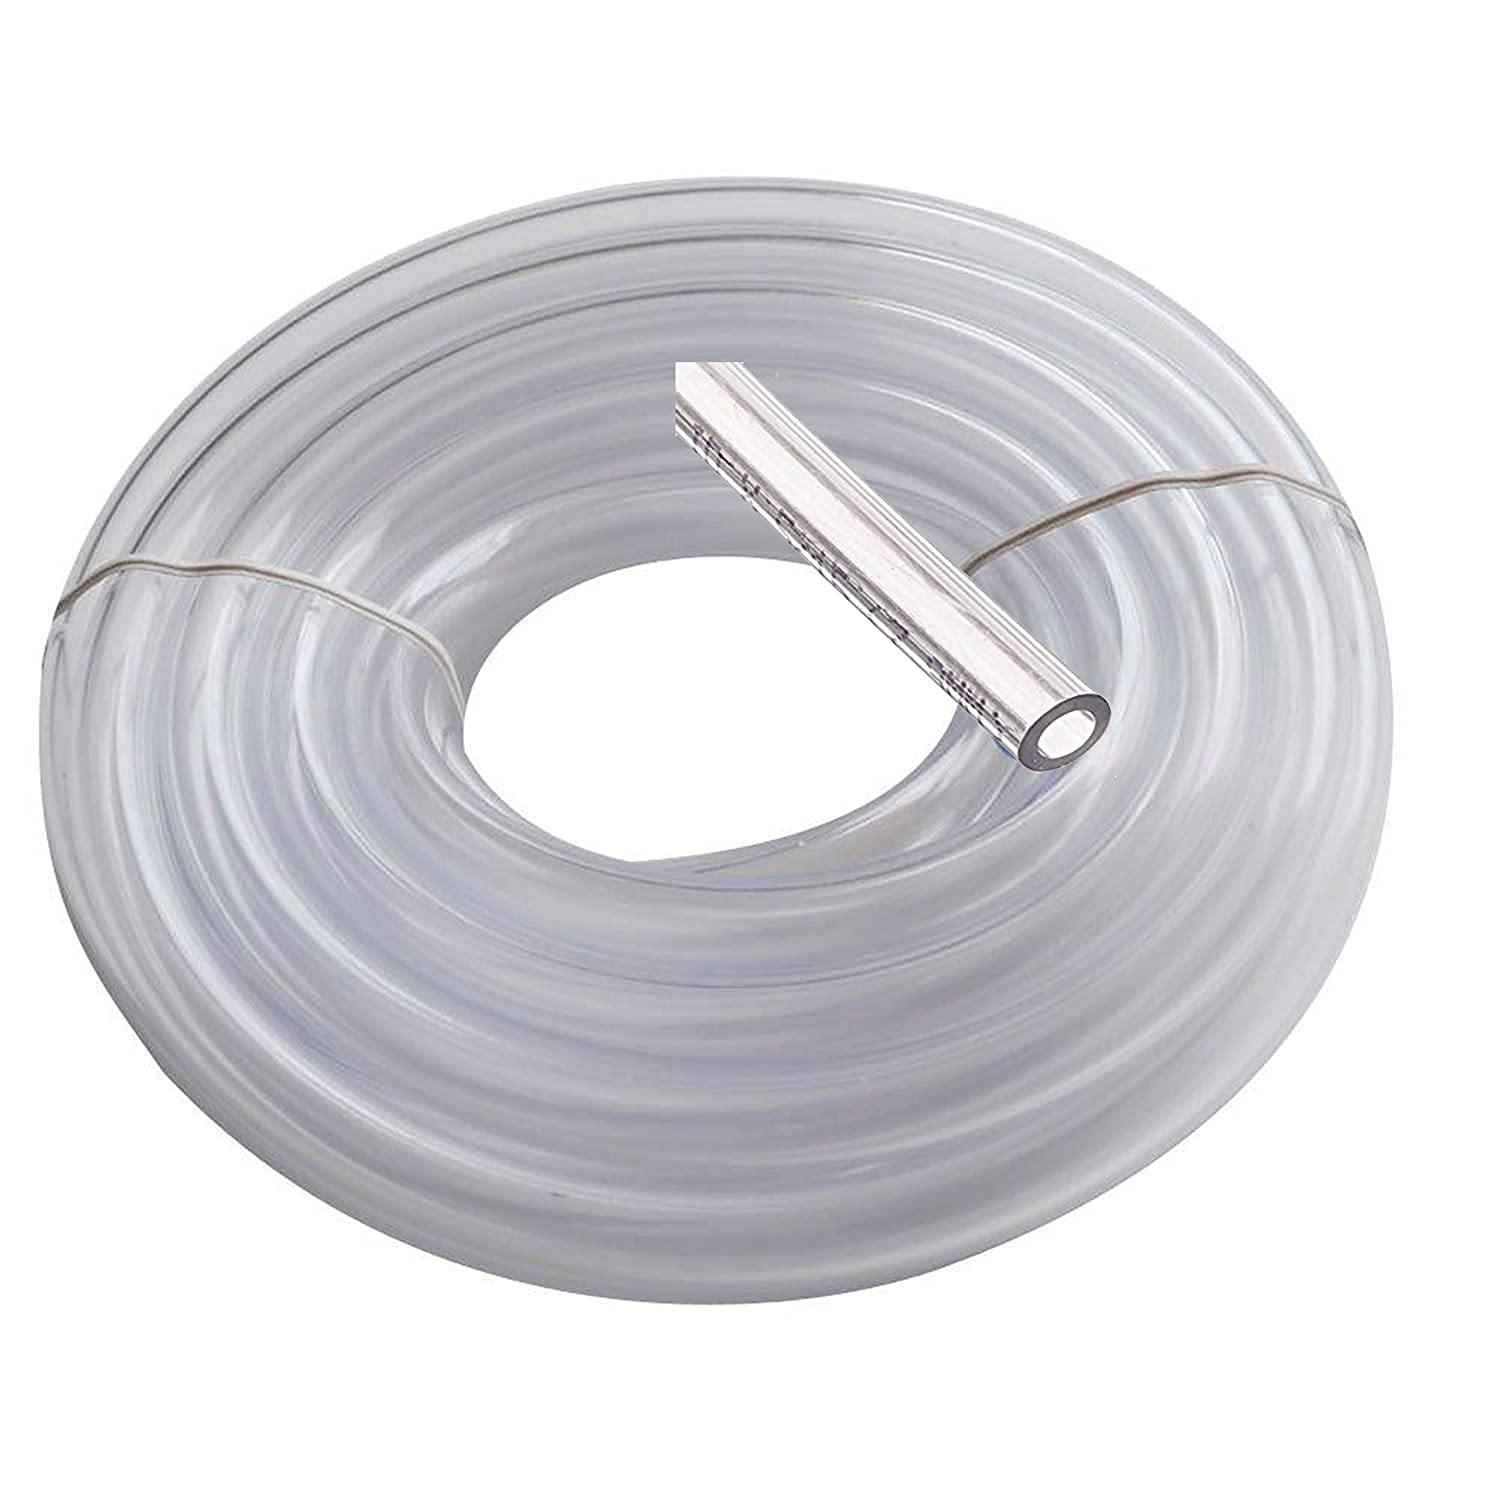 "Utah Pneumatic Vinyl Tubing 3/8"" Id 1/2"" Od 25 Feet Brewing Hose Medical Grade Tubing Beer Draft Line Clear Tubbing Wine and Beer Making Bpa Free Tube Water Fountain Tubing Beverage Line Food Grade"